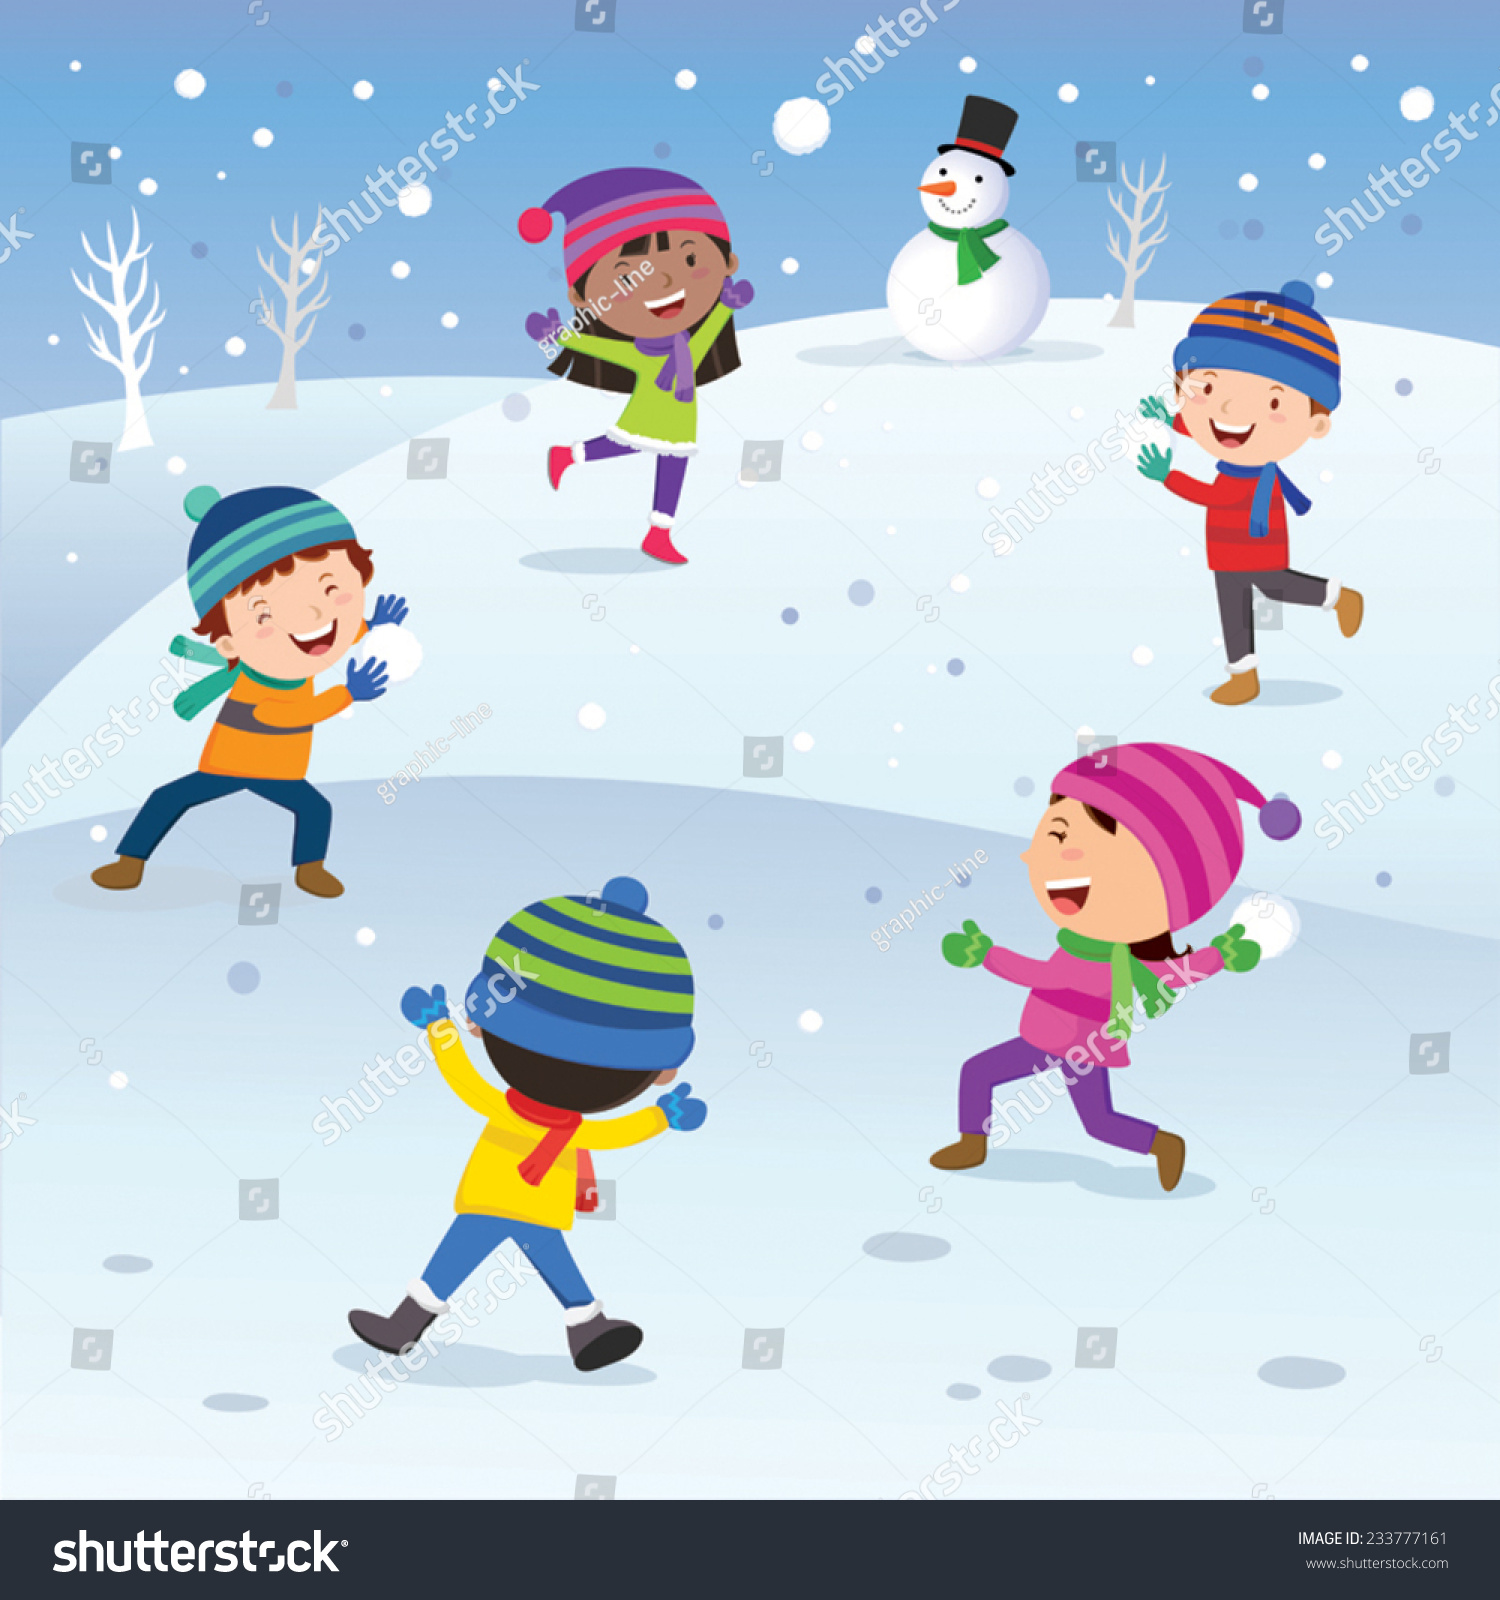 Winter clipart fun kid To collection Children out the